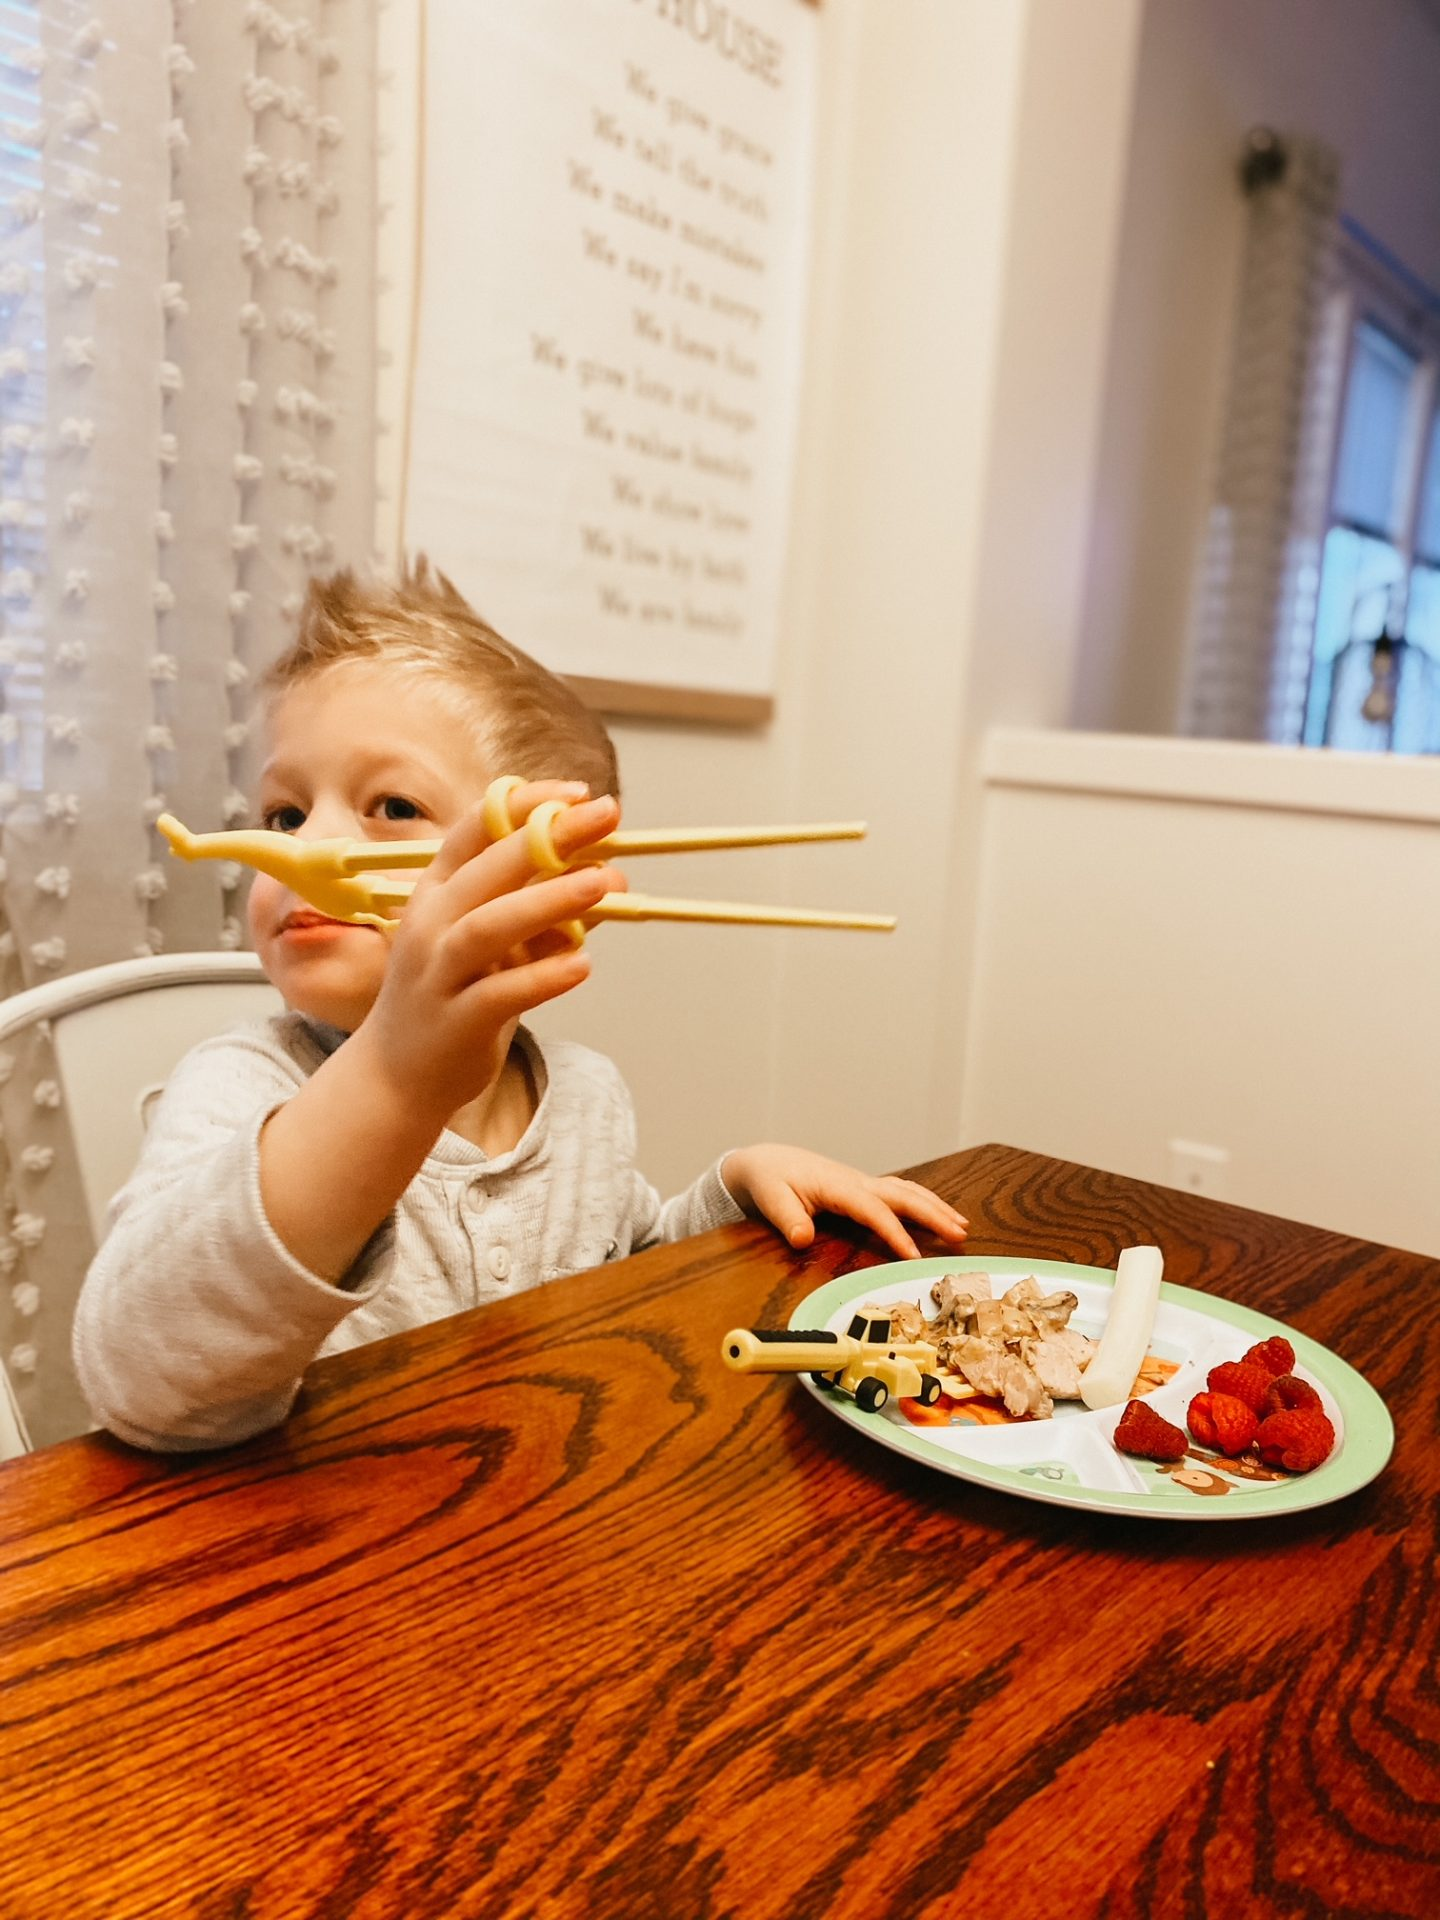 learning chopsticks